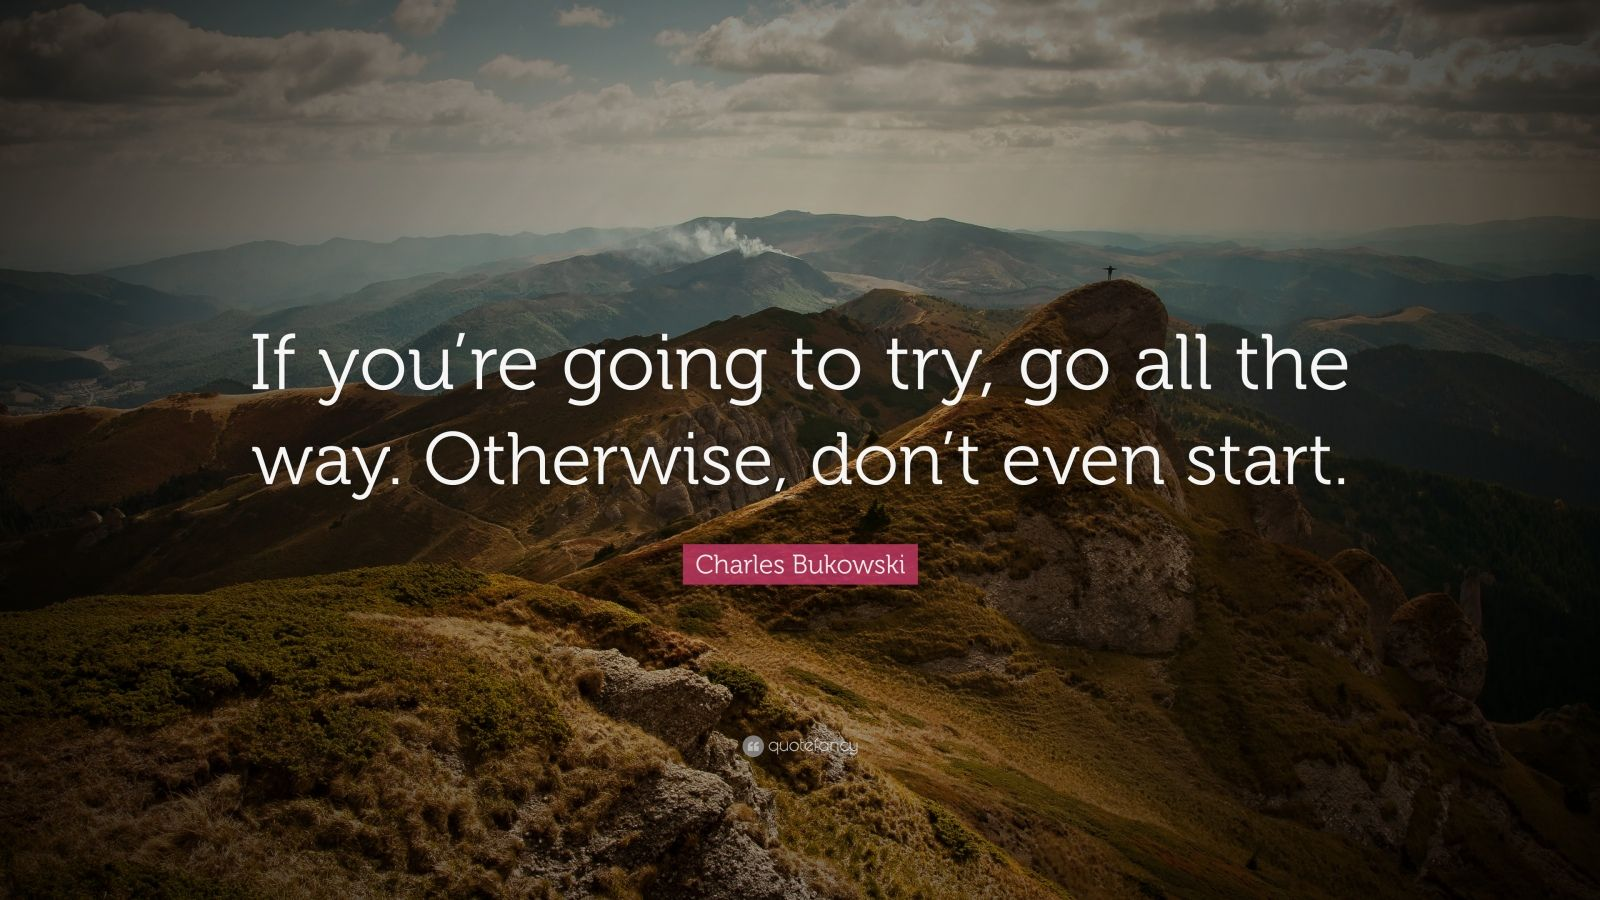 Charles Bukowski Quote If You Re Going To Try Go All The Way Otherwise Don T Even Start